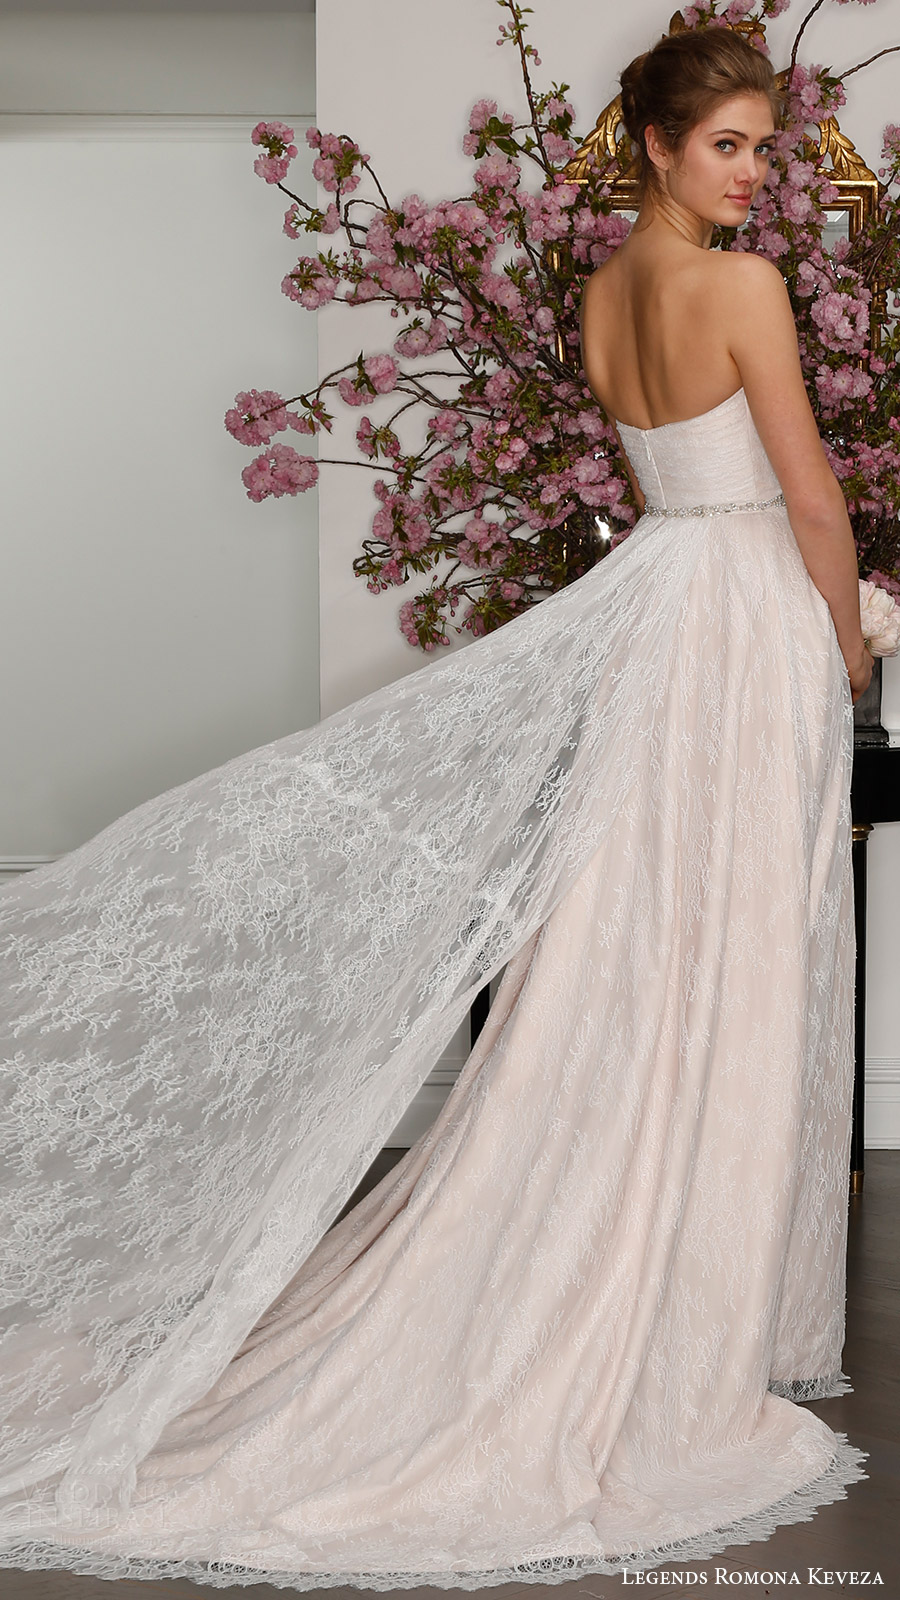 legends romona keveza bridal spring 2017 strapless sweetheart draped bodice lace aline wedding dress (l7128) mv blush color train